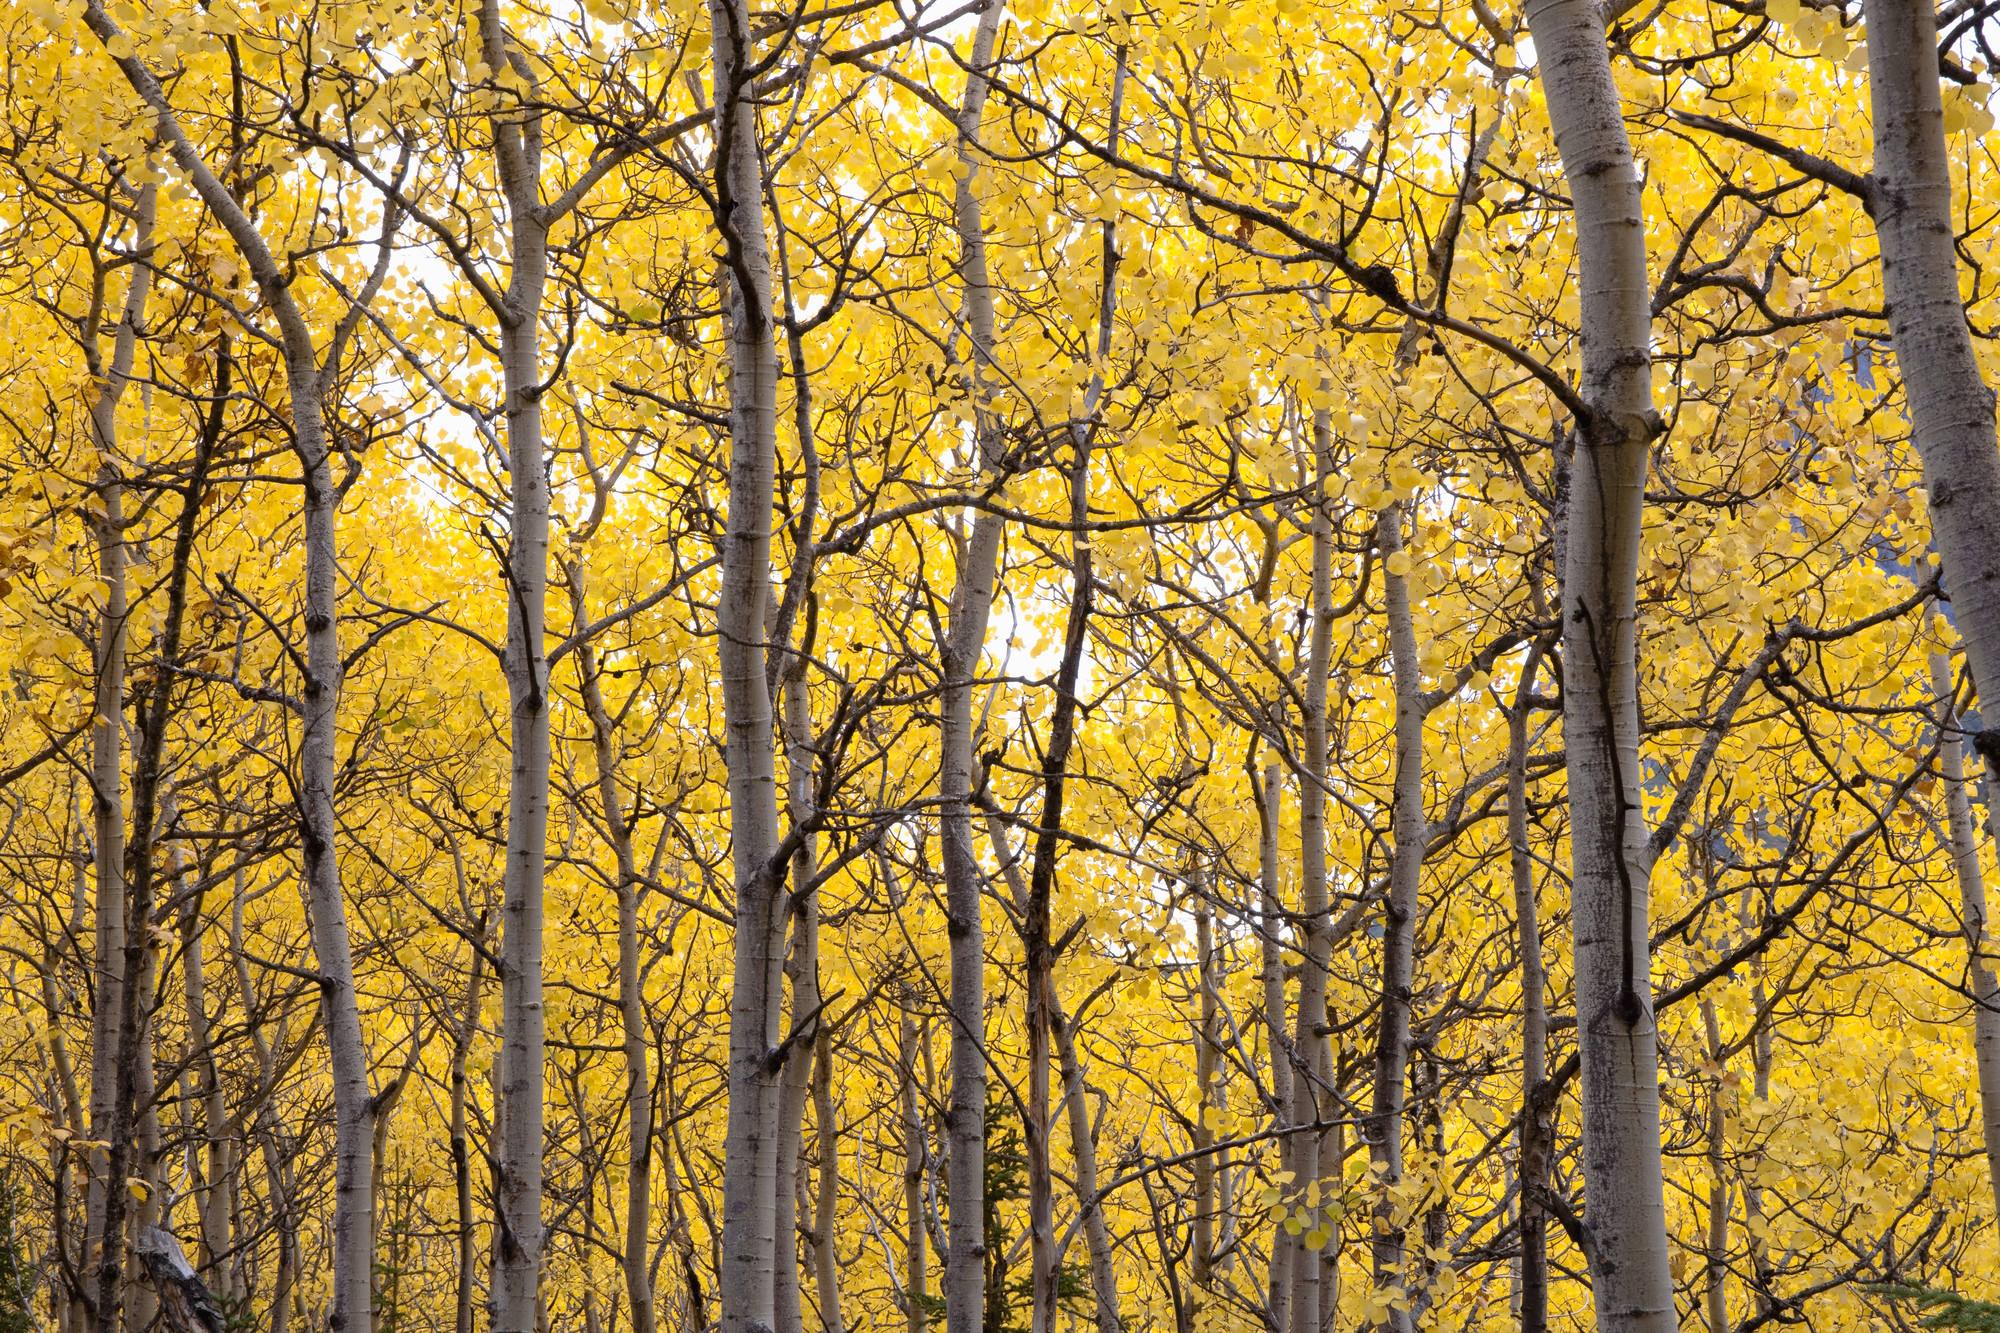 2000x1333 Autumn Scenic Of Colorful Yellow Aspen Trees Wall Mural Photo Wallpaper